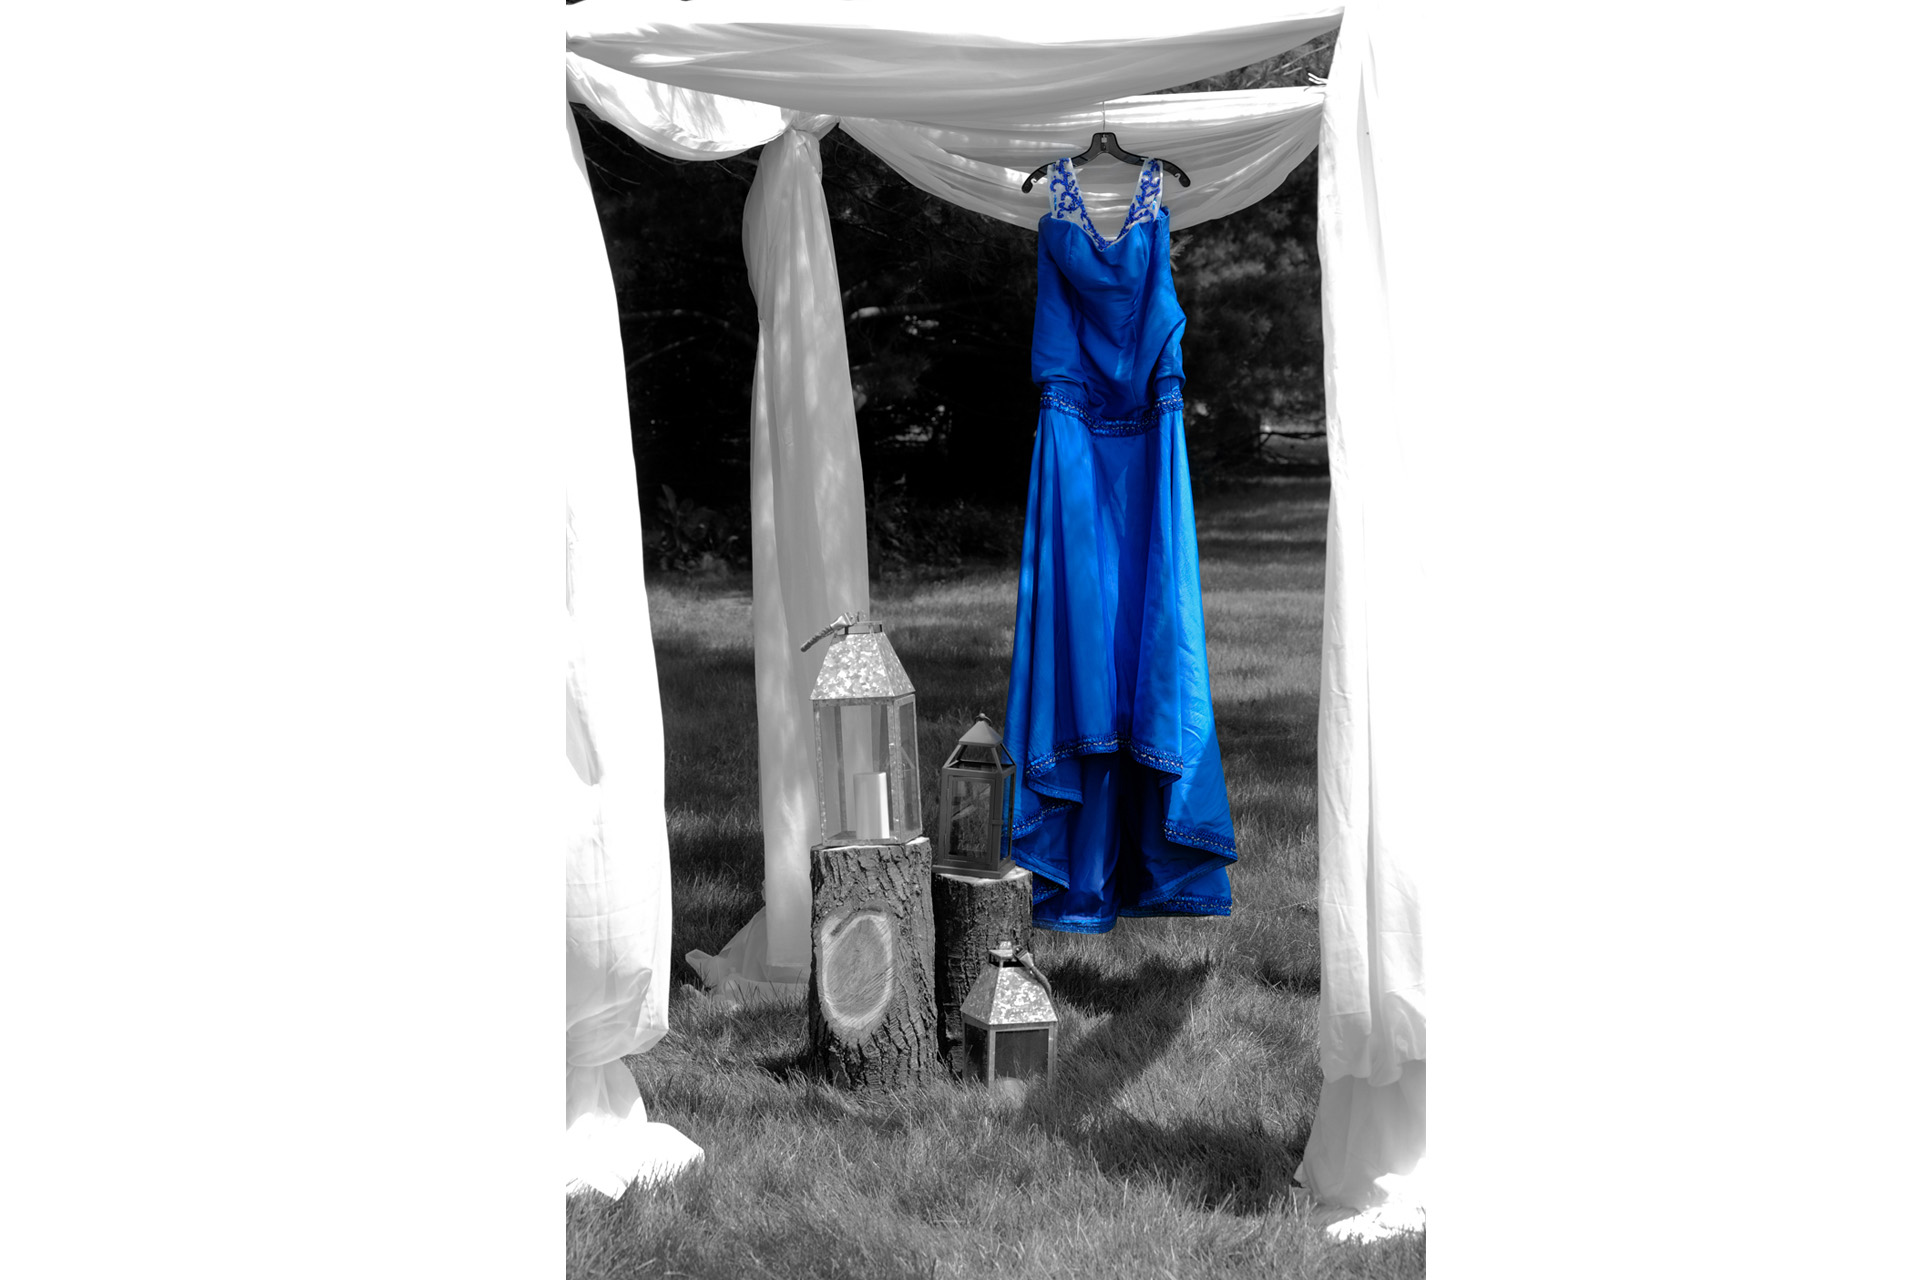 budget conscience brides featuring contemporary and Pinterest worthy wedding photographs in Michigan highlights moving away from Pinterest to creating your unique wedding photography showing the bride's bright blue wedding dress hanging under the tent where the couple will exchange vows for their wedding at the Michigan wedding that emphasized photojournalist's moments and kept the bride on her budget.